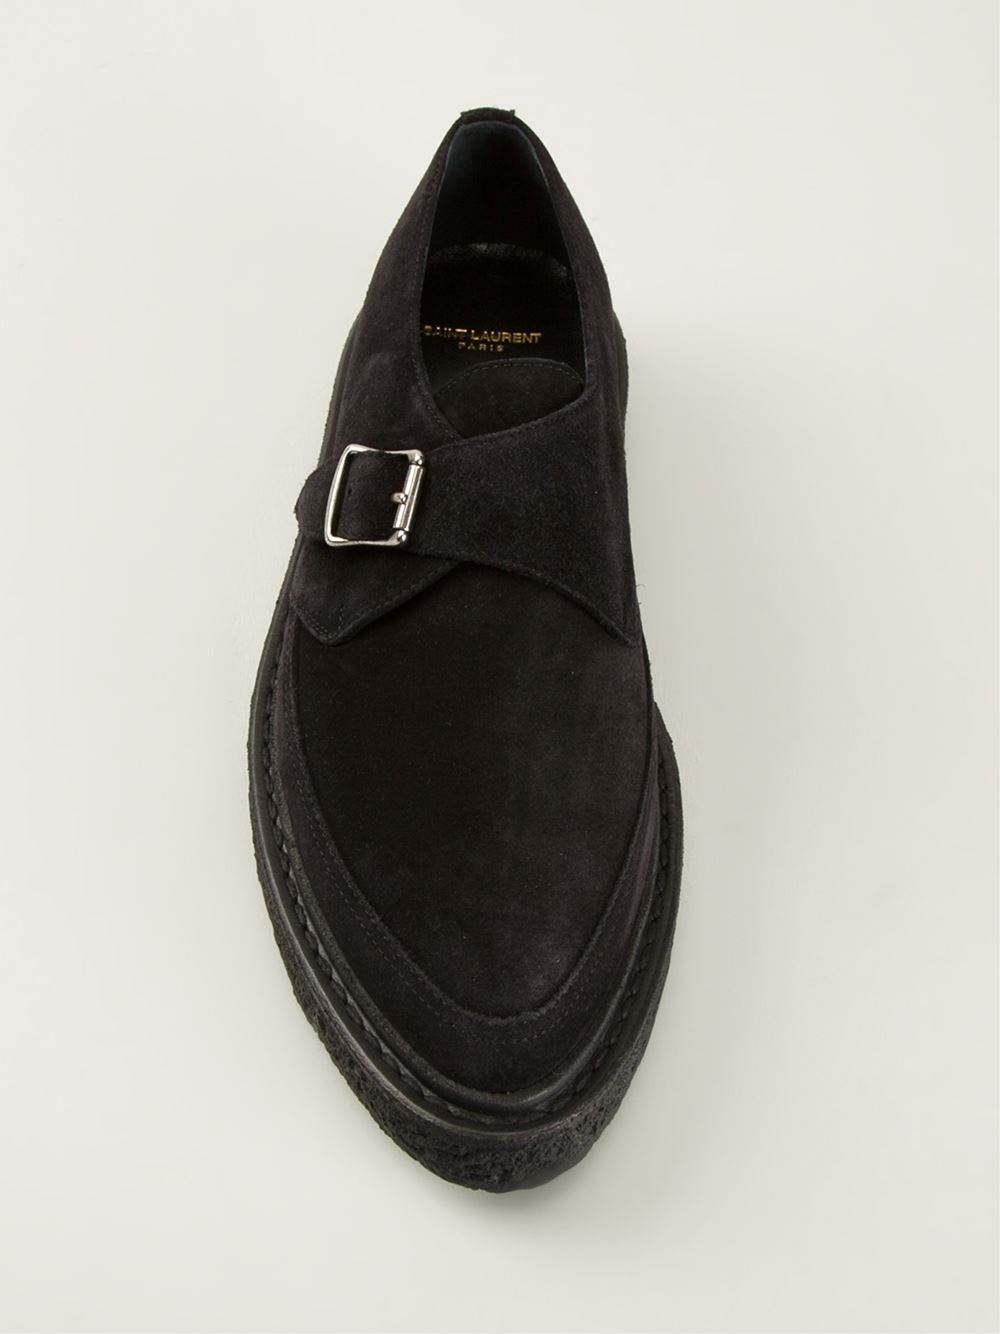 Lyst Saint Laurent Creeper 30 Monk Shoes In Black For Men